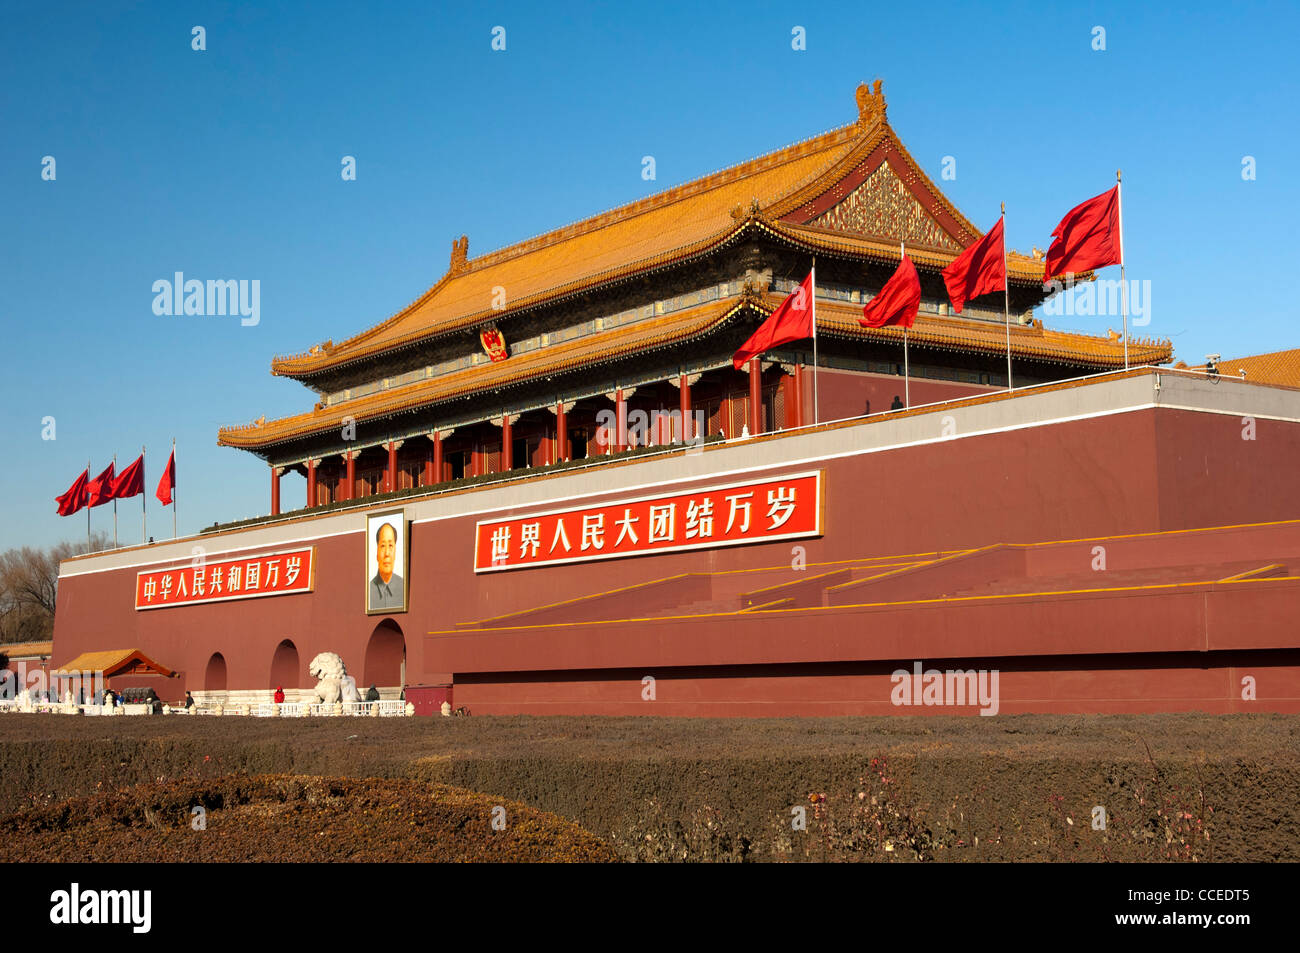 Tiananmen Gate to the Forbidden City at Tiananmen square, Beijing, China - Stock Image